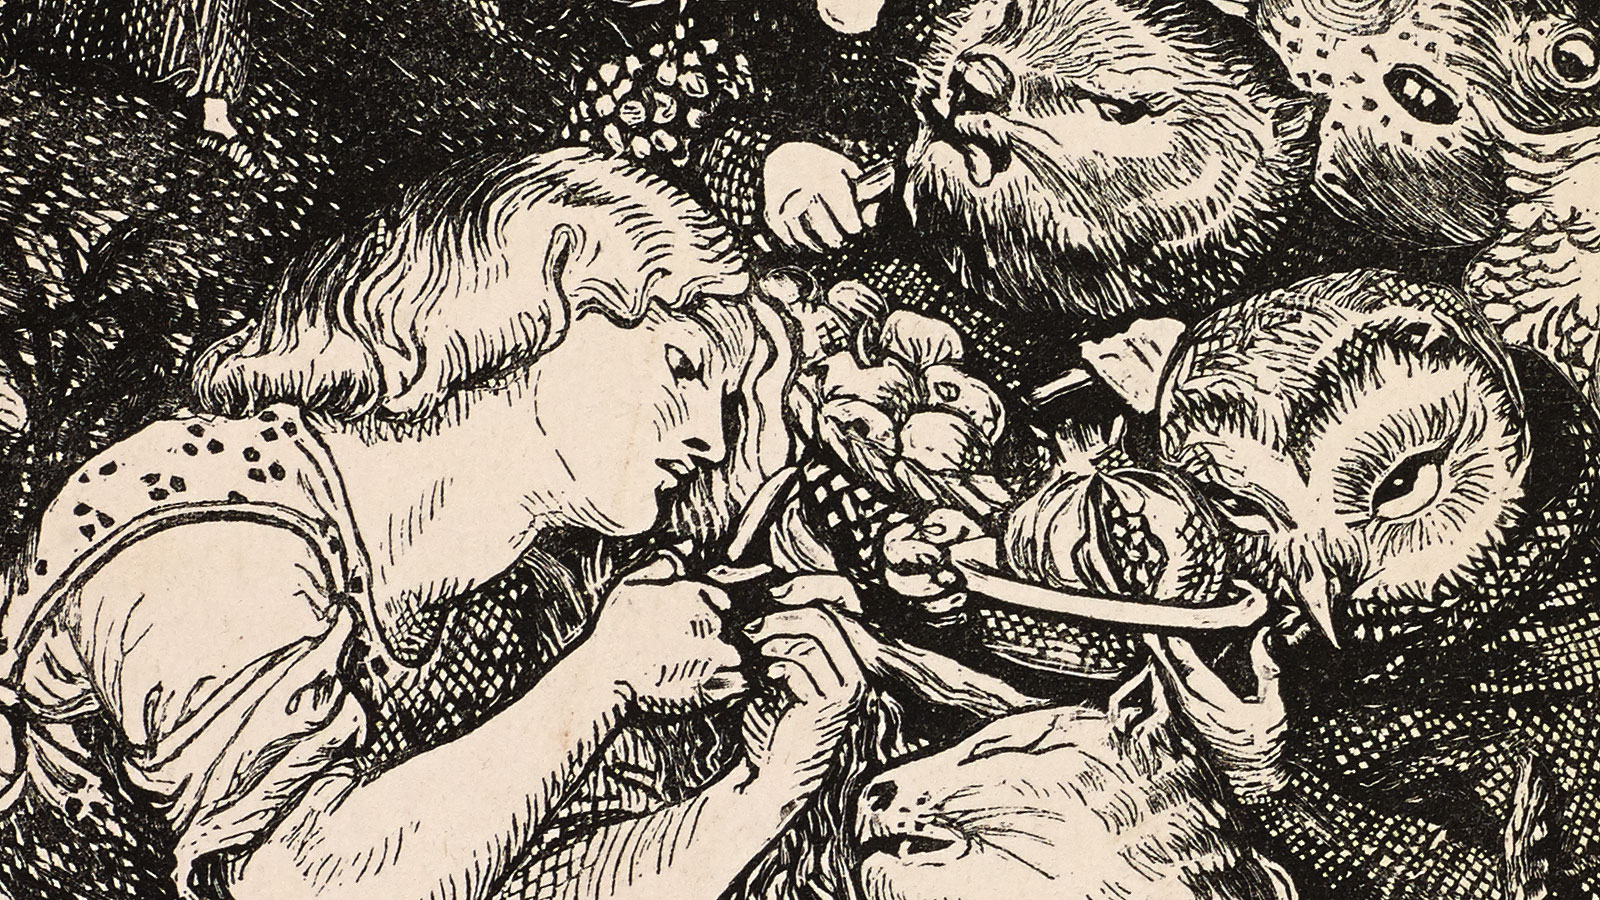 An introduction to 'Goblin Market'